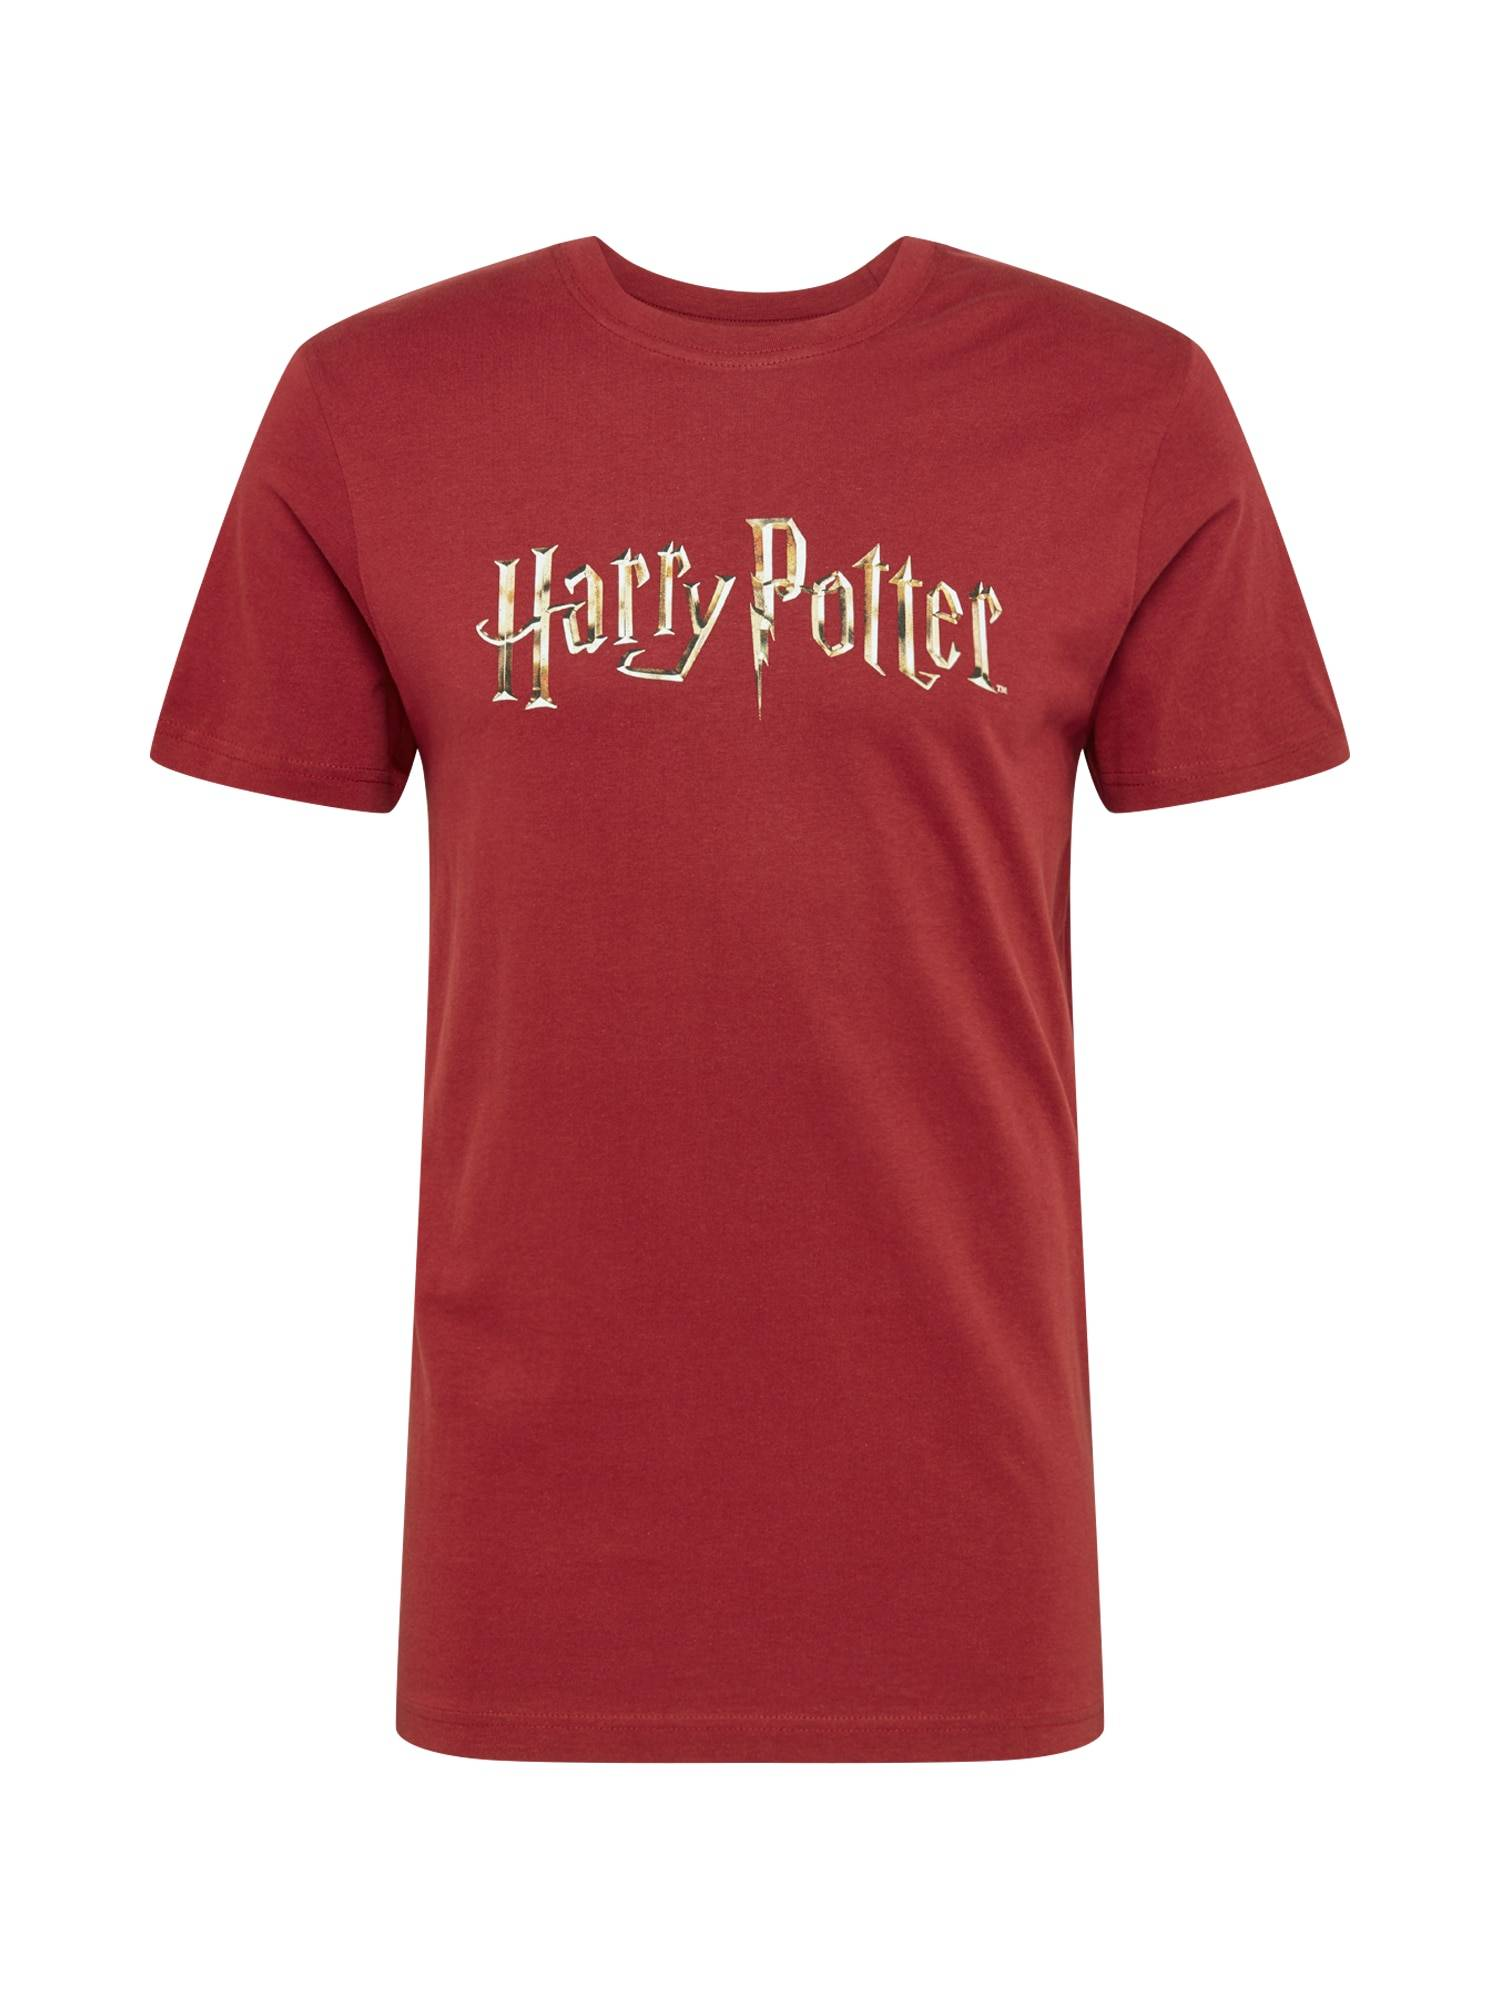 Tee T-Shirt 'Harry Potter'  - Rouge - Taille: M - male